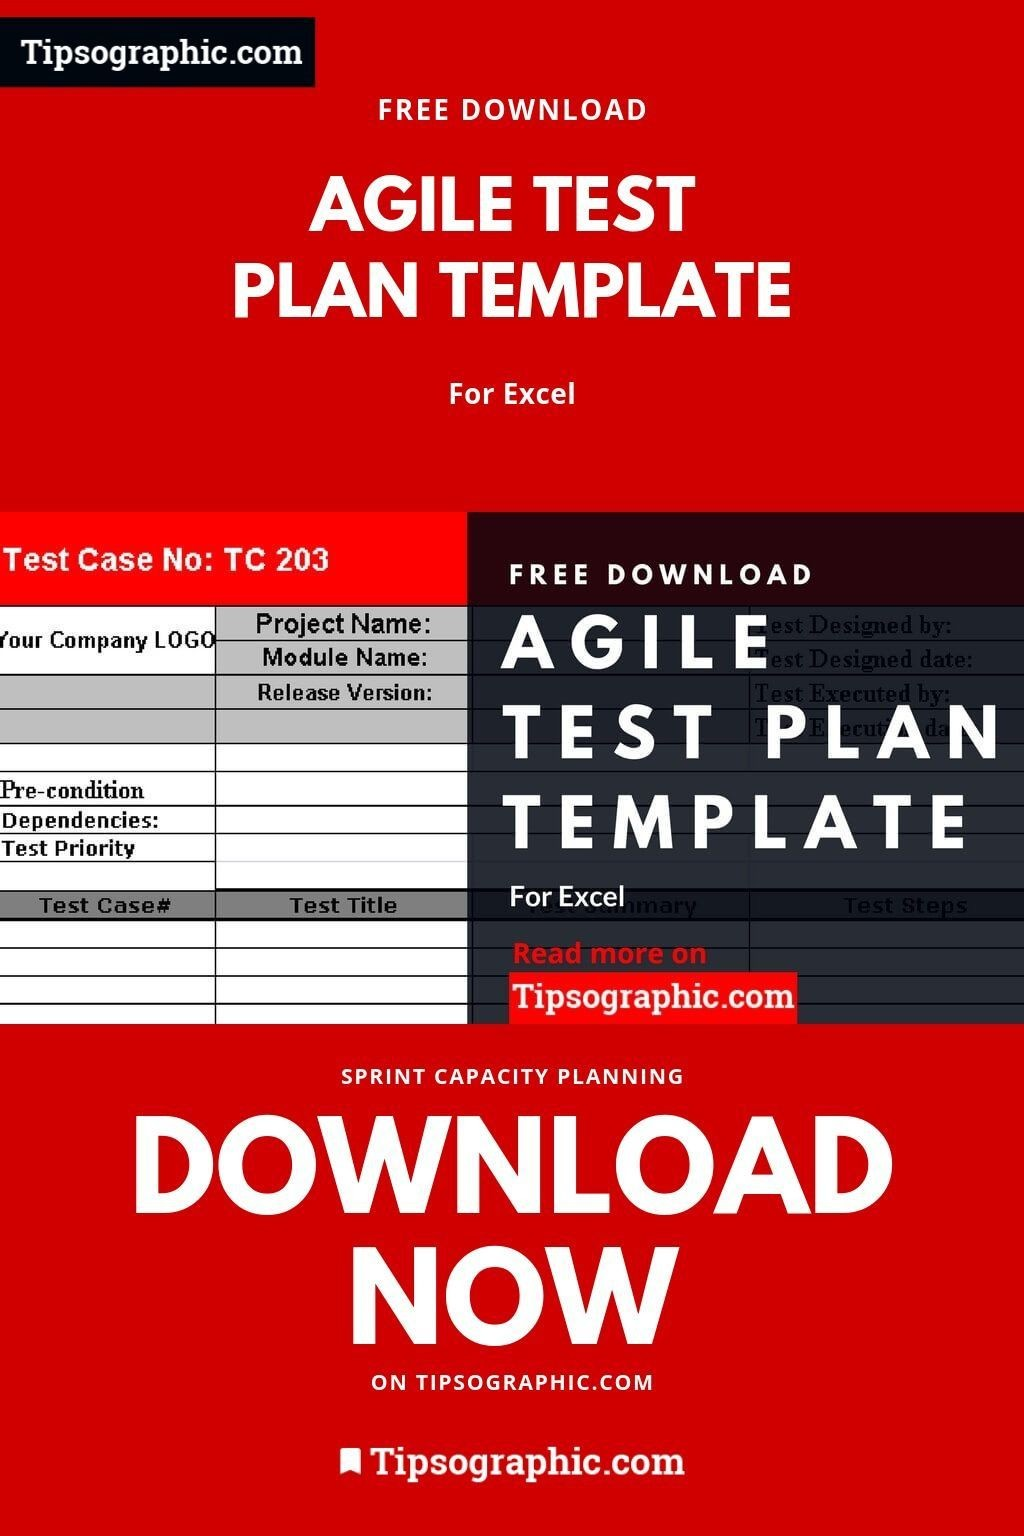 002 Staggering Agile Test Plan Template Sample  Word Example DocumentLarge